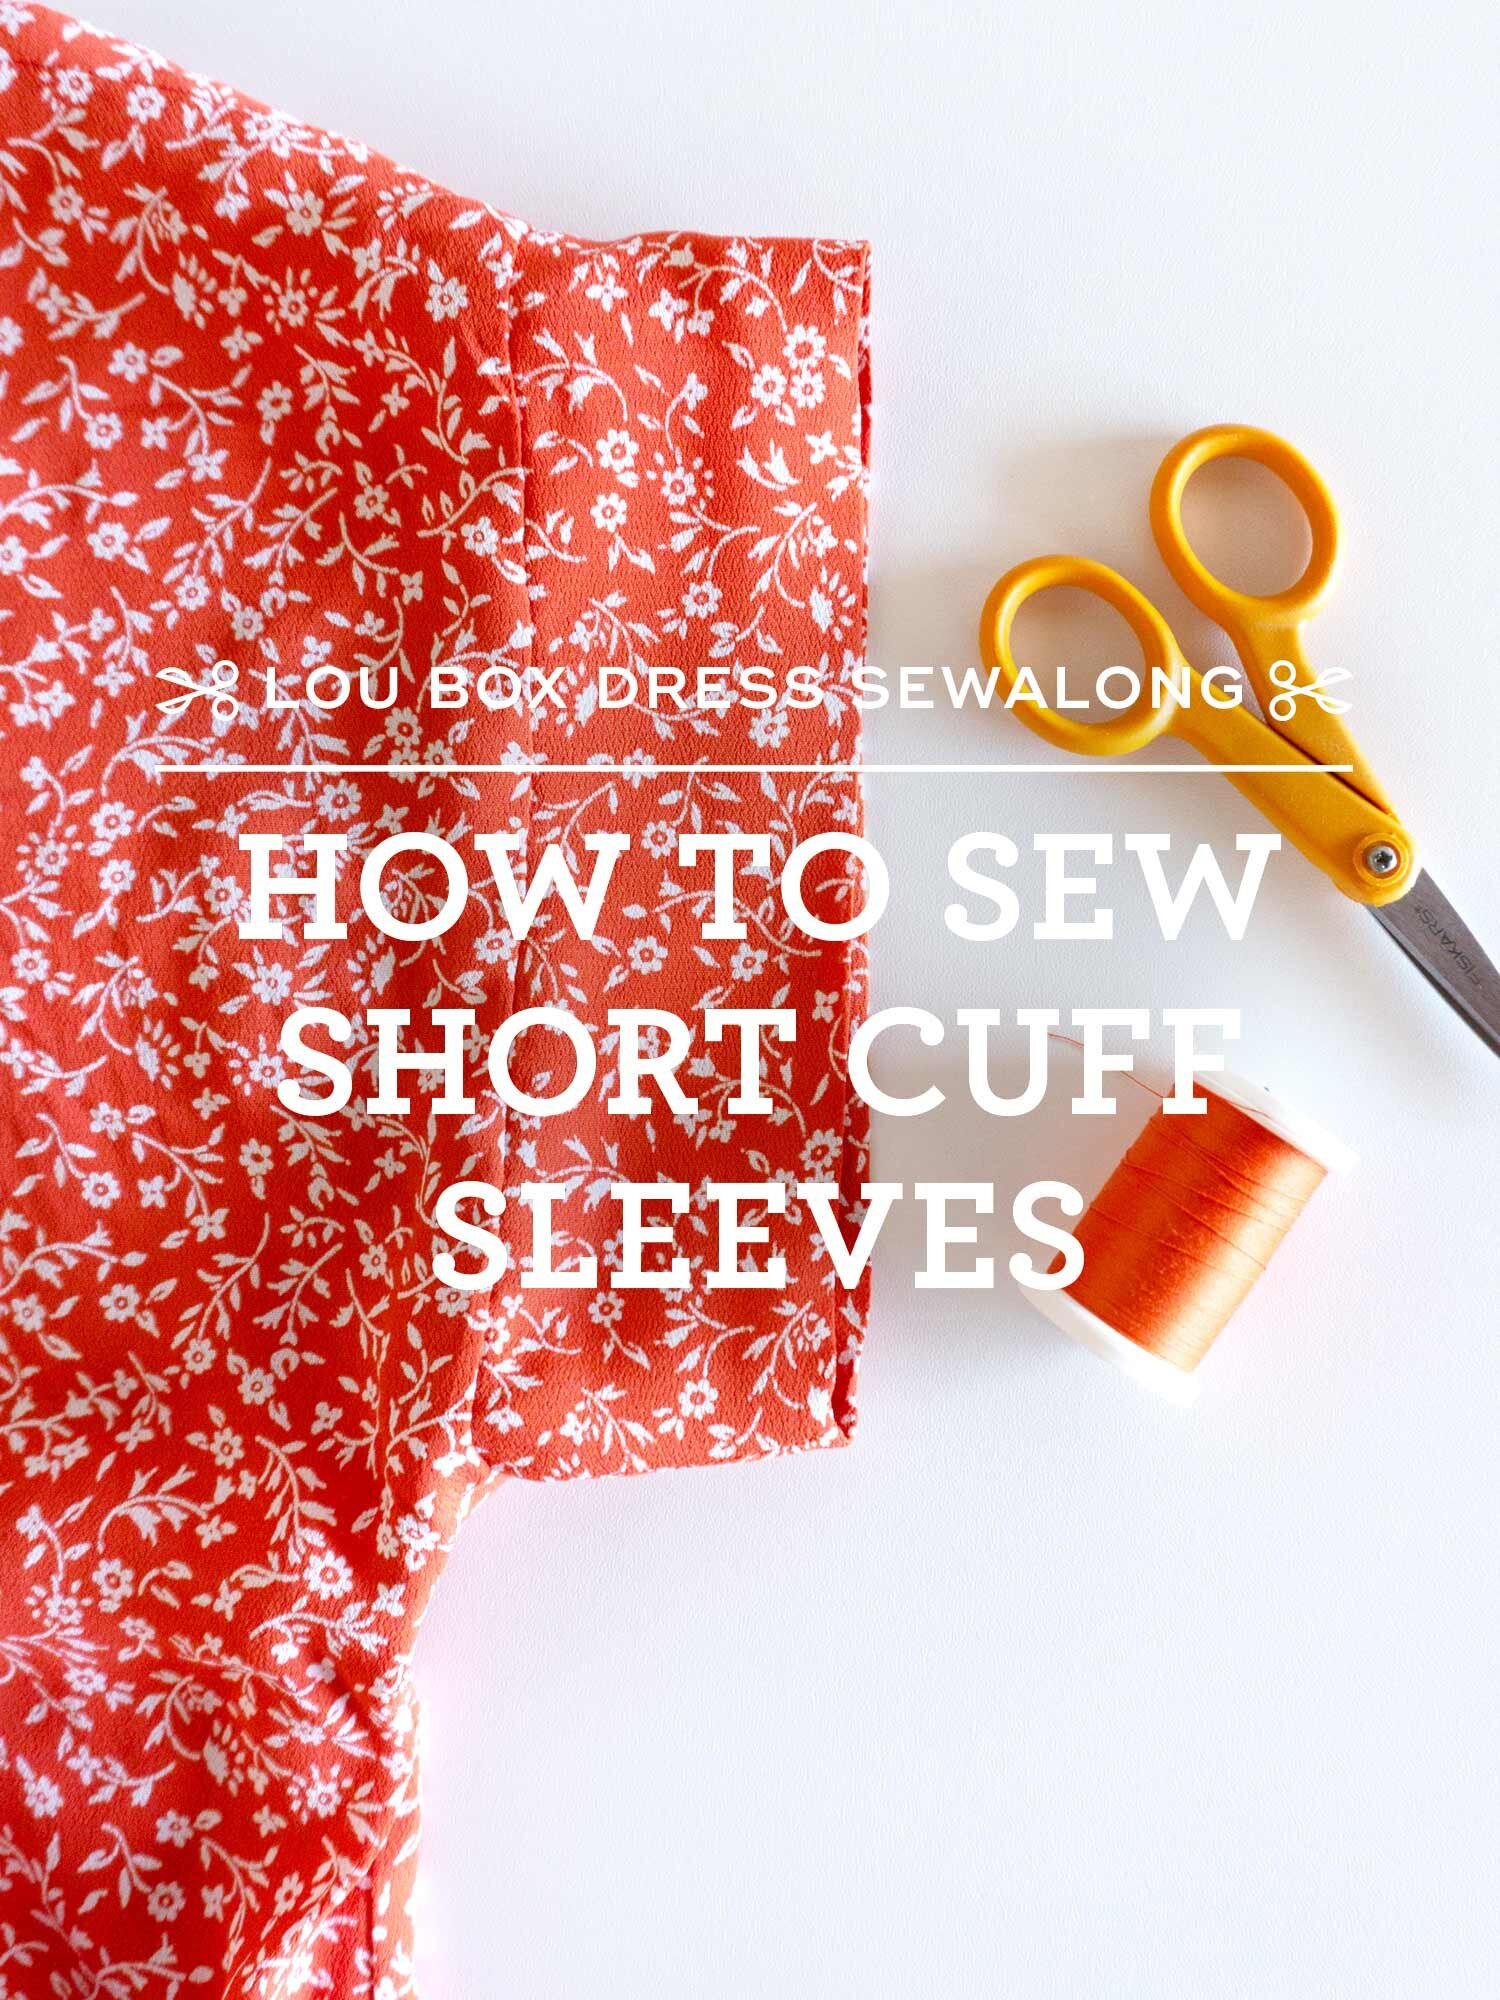 Video tutorial - How to sew the Lou Box Dress 1 short cuff sleeves - Sew DIY